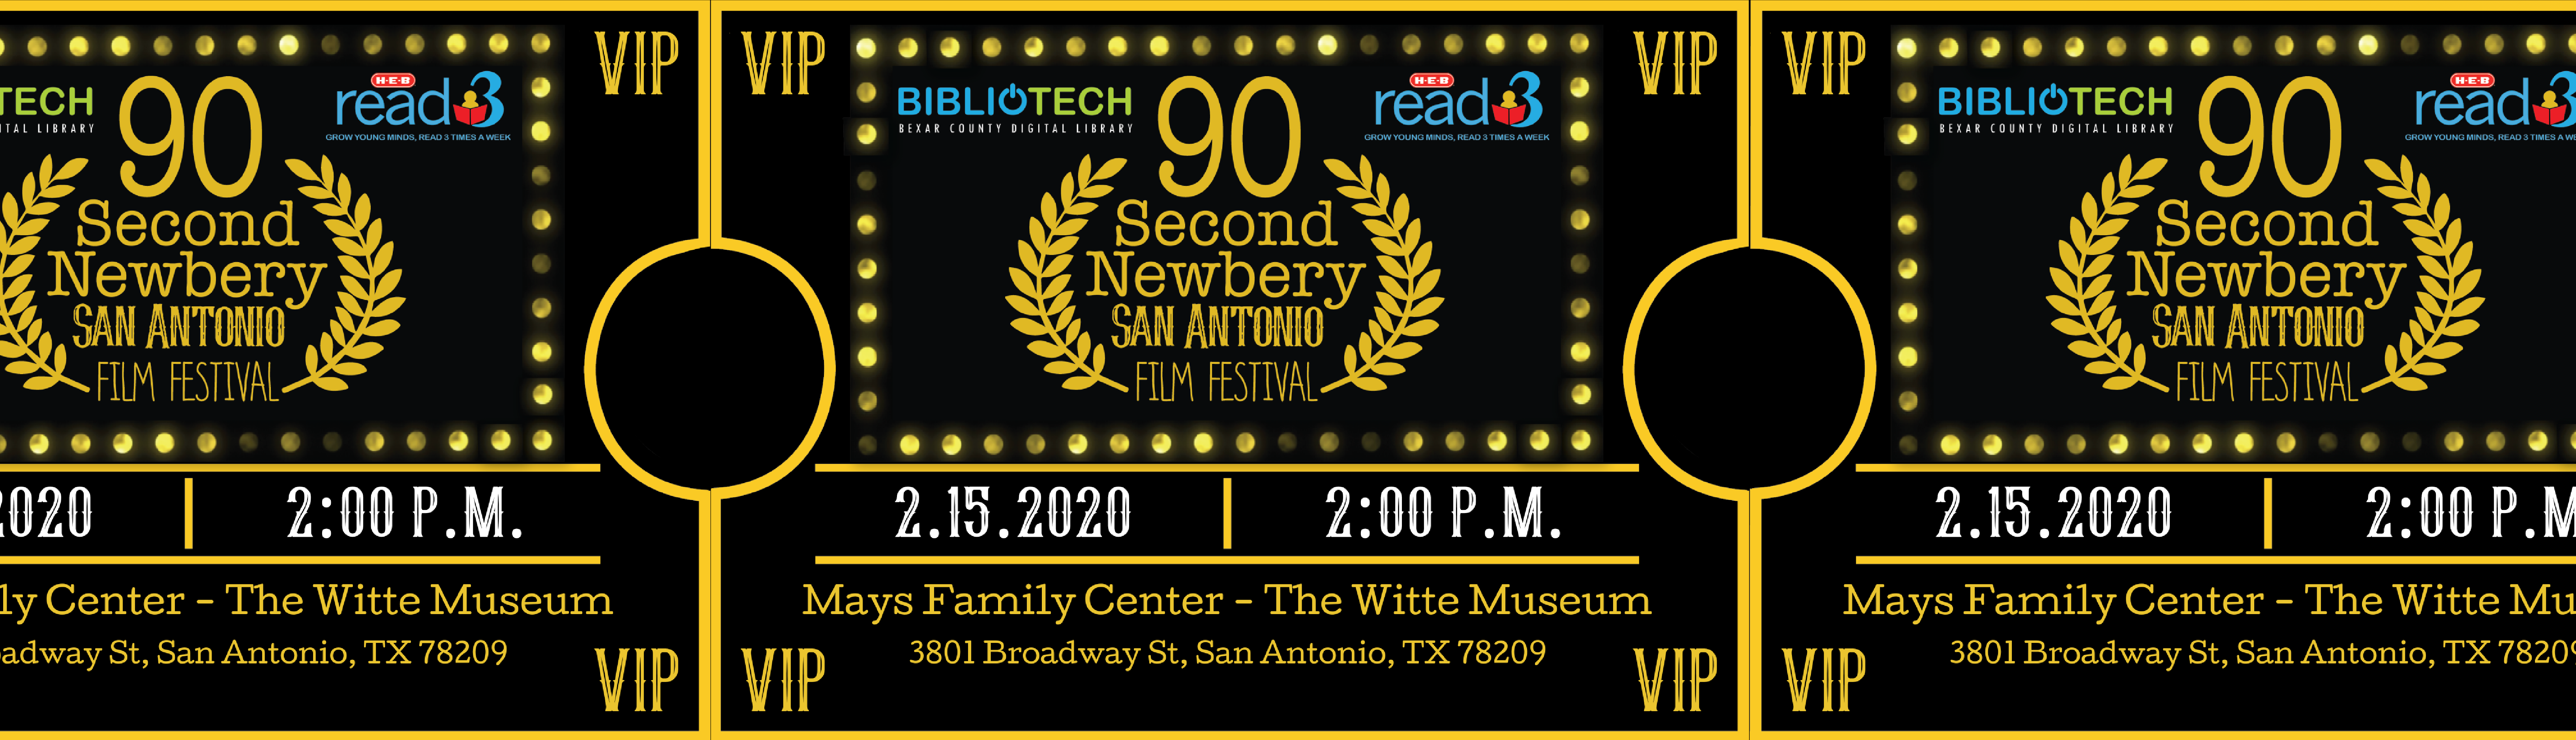 90-Second Newbery Film Festival will be held on Feb. 15 at 2pm at the Witte Museum. All are welcome!